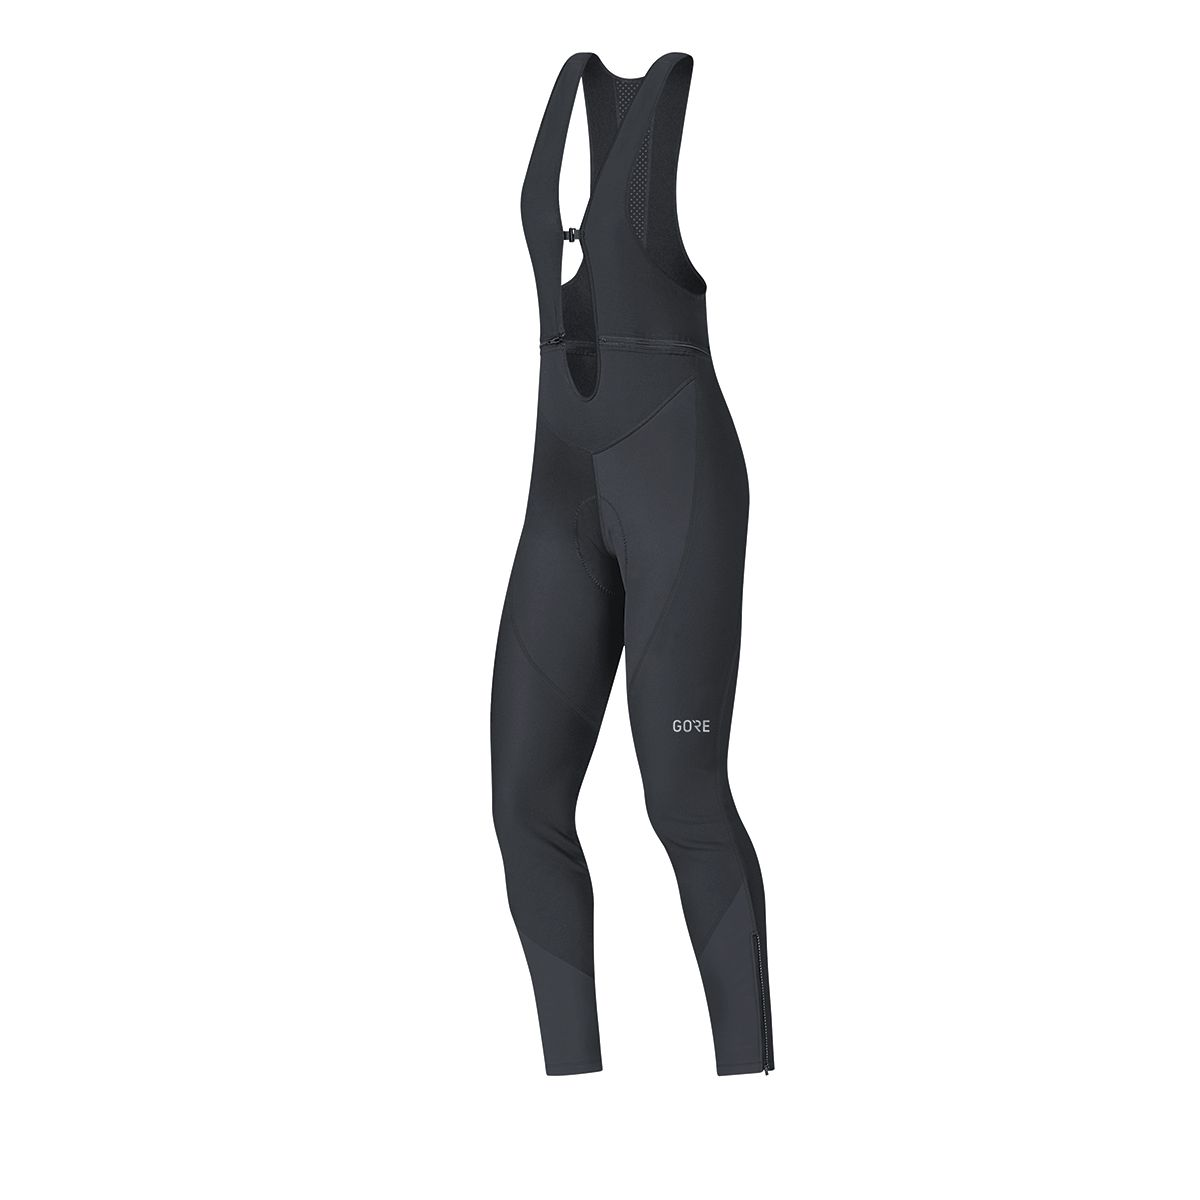 C3 WOMEN GORE WINDSTOPPER BIB TIGHTS+ Damen Thermo Trägerhose